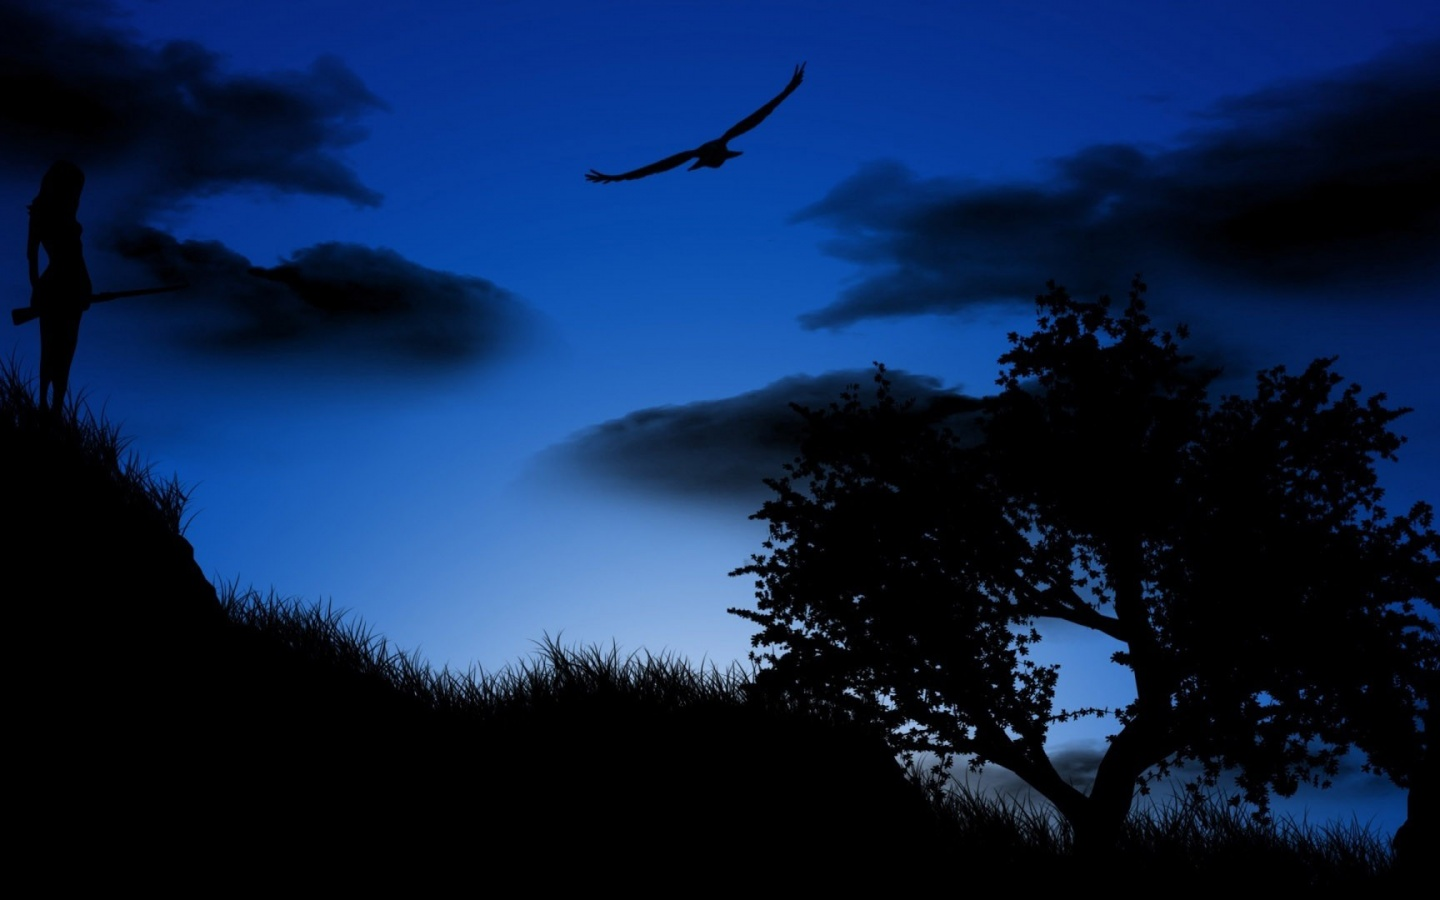 1440x900 Blue night, tree, bird, cloud, digital-art